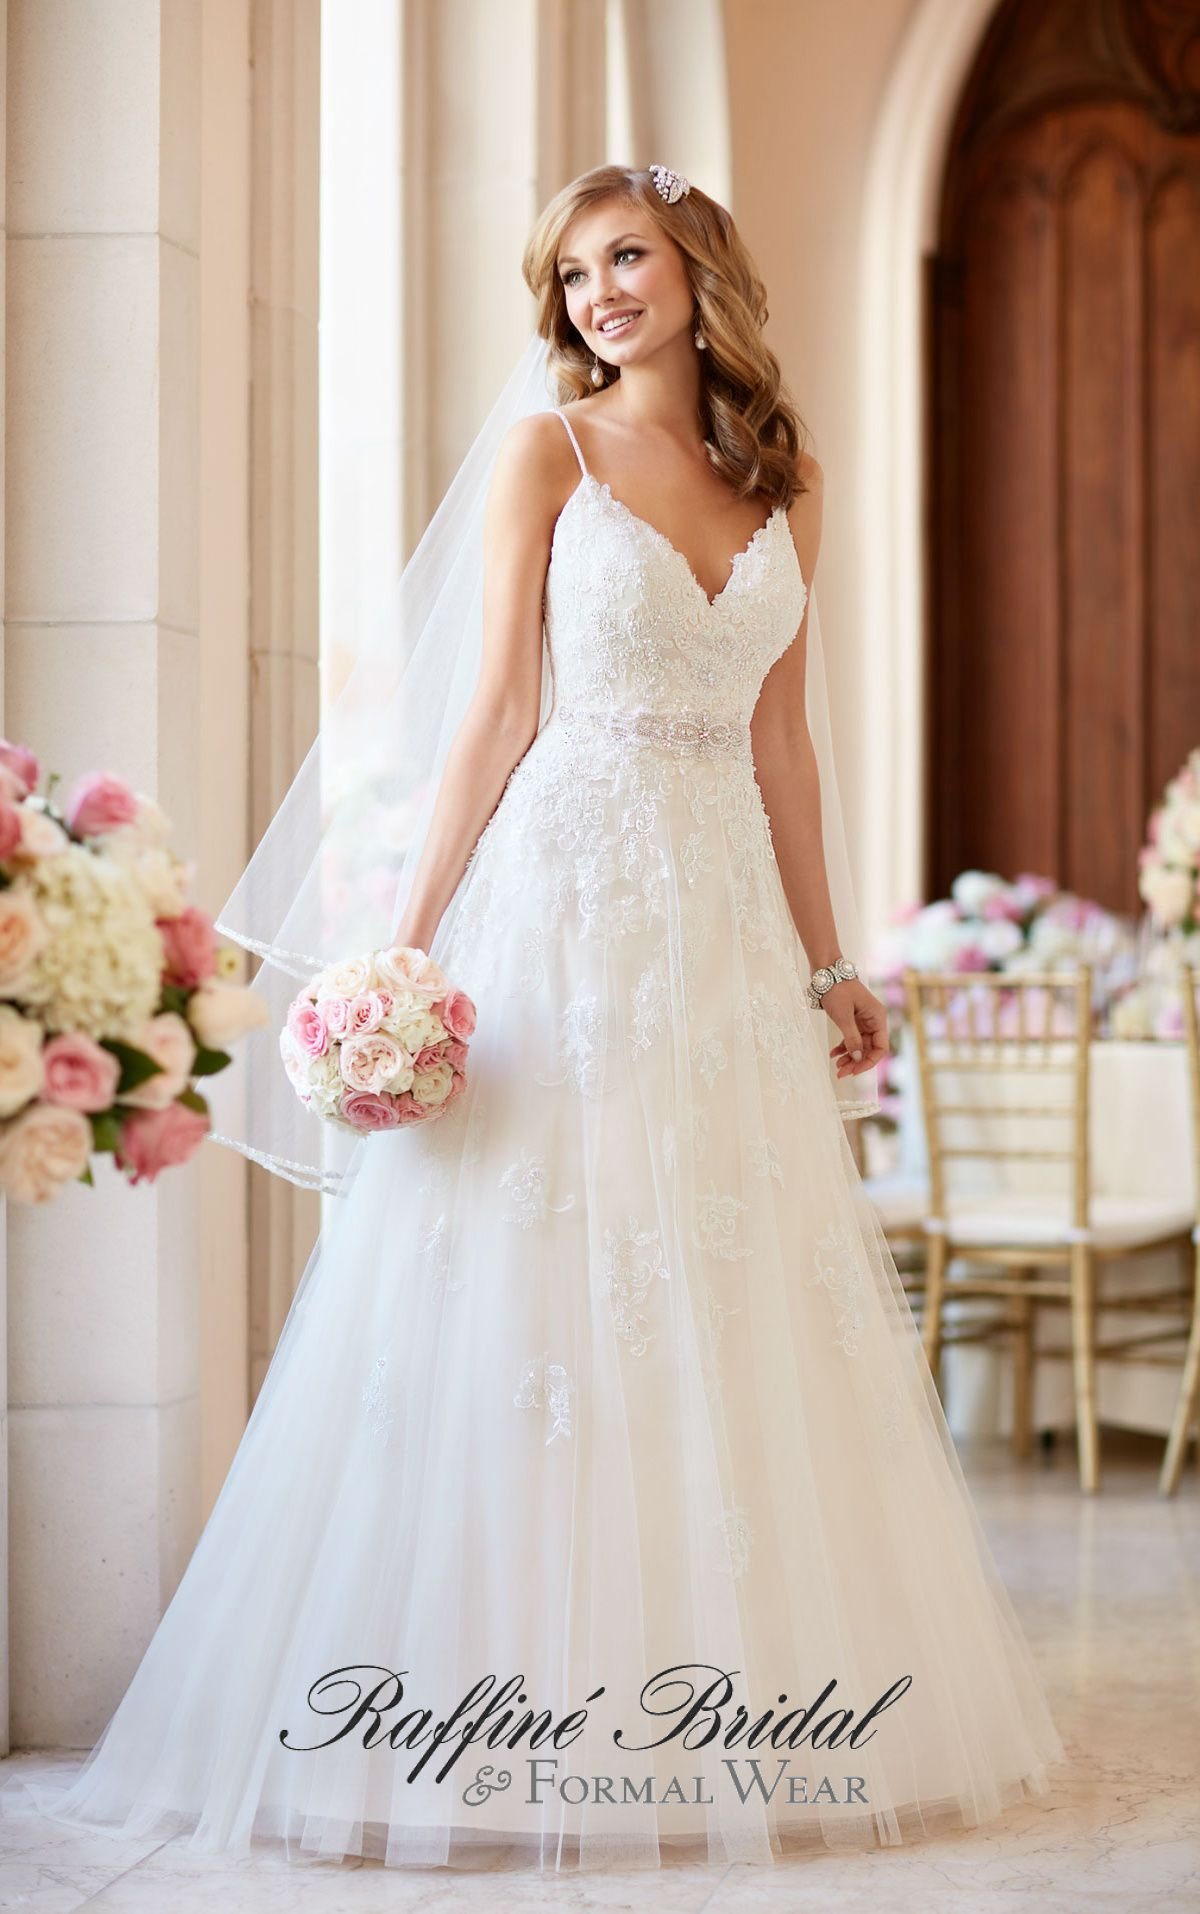 Stella york 6347 this lace and tulle a line wedding dress by lace and tulle a line wedding dress by designer stella york features a v neck bust and back and diamante beading throughout a diamante encrusted grosgrain ombrellifo Image collections